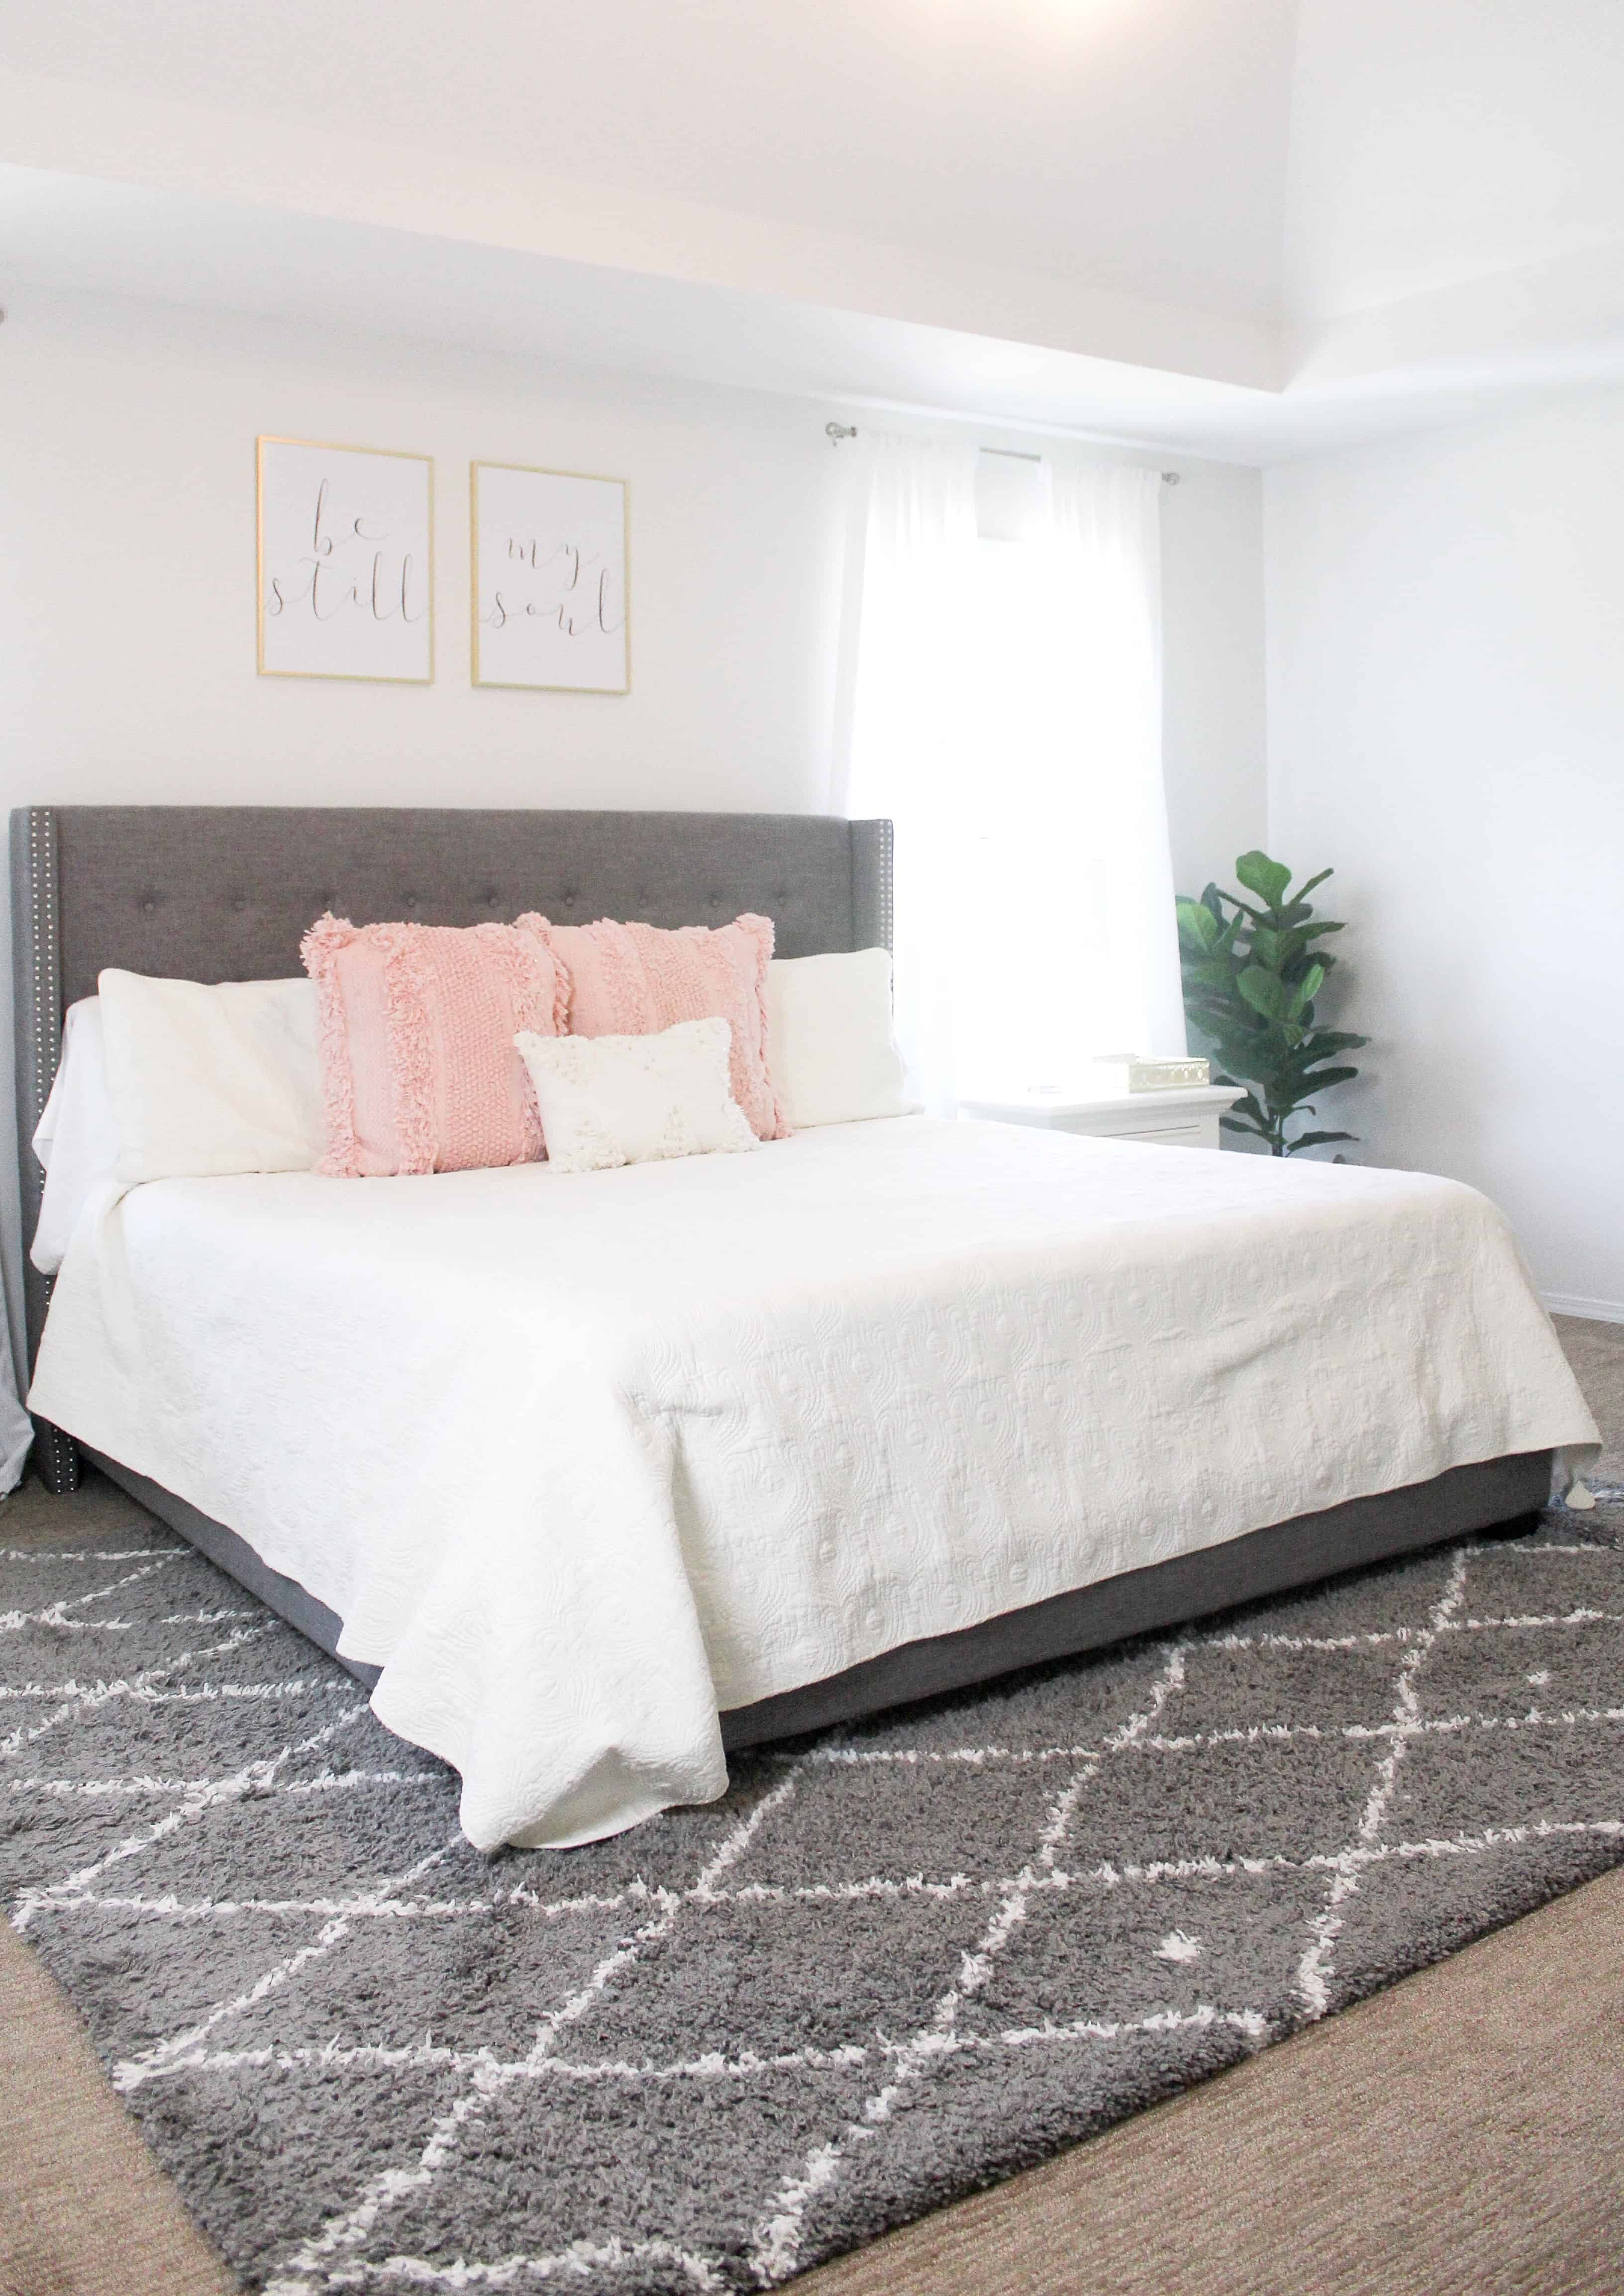 white bedding with pink pillows and grey rug